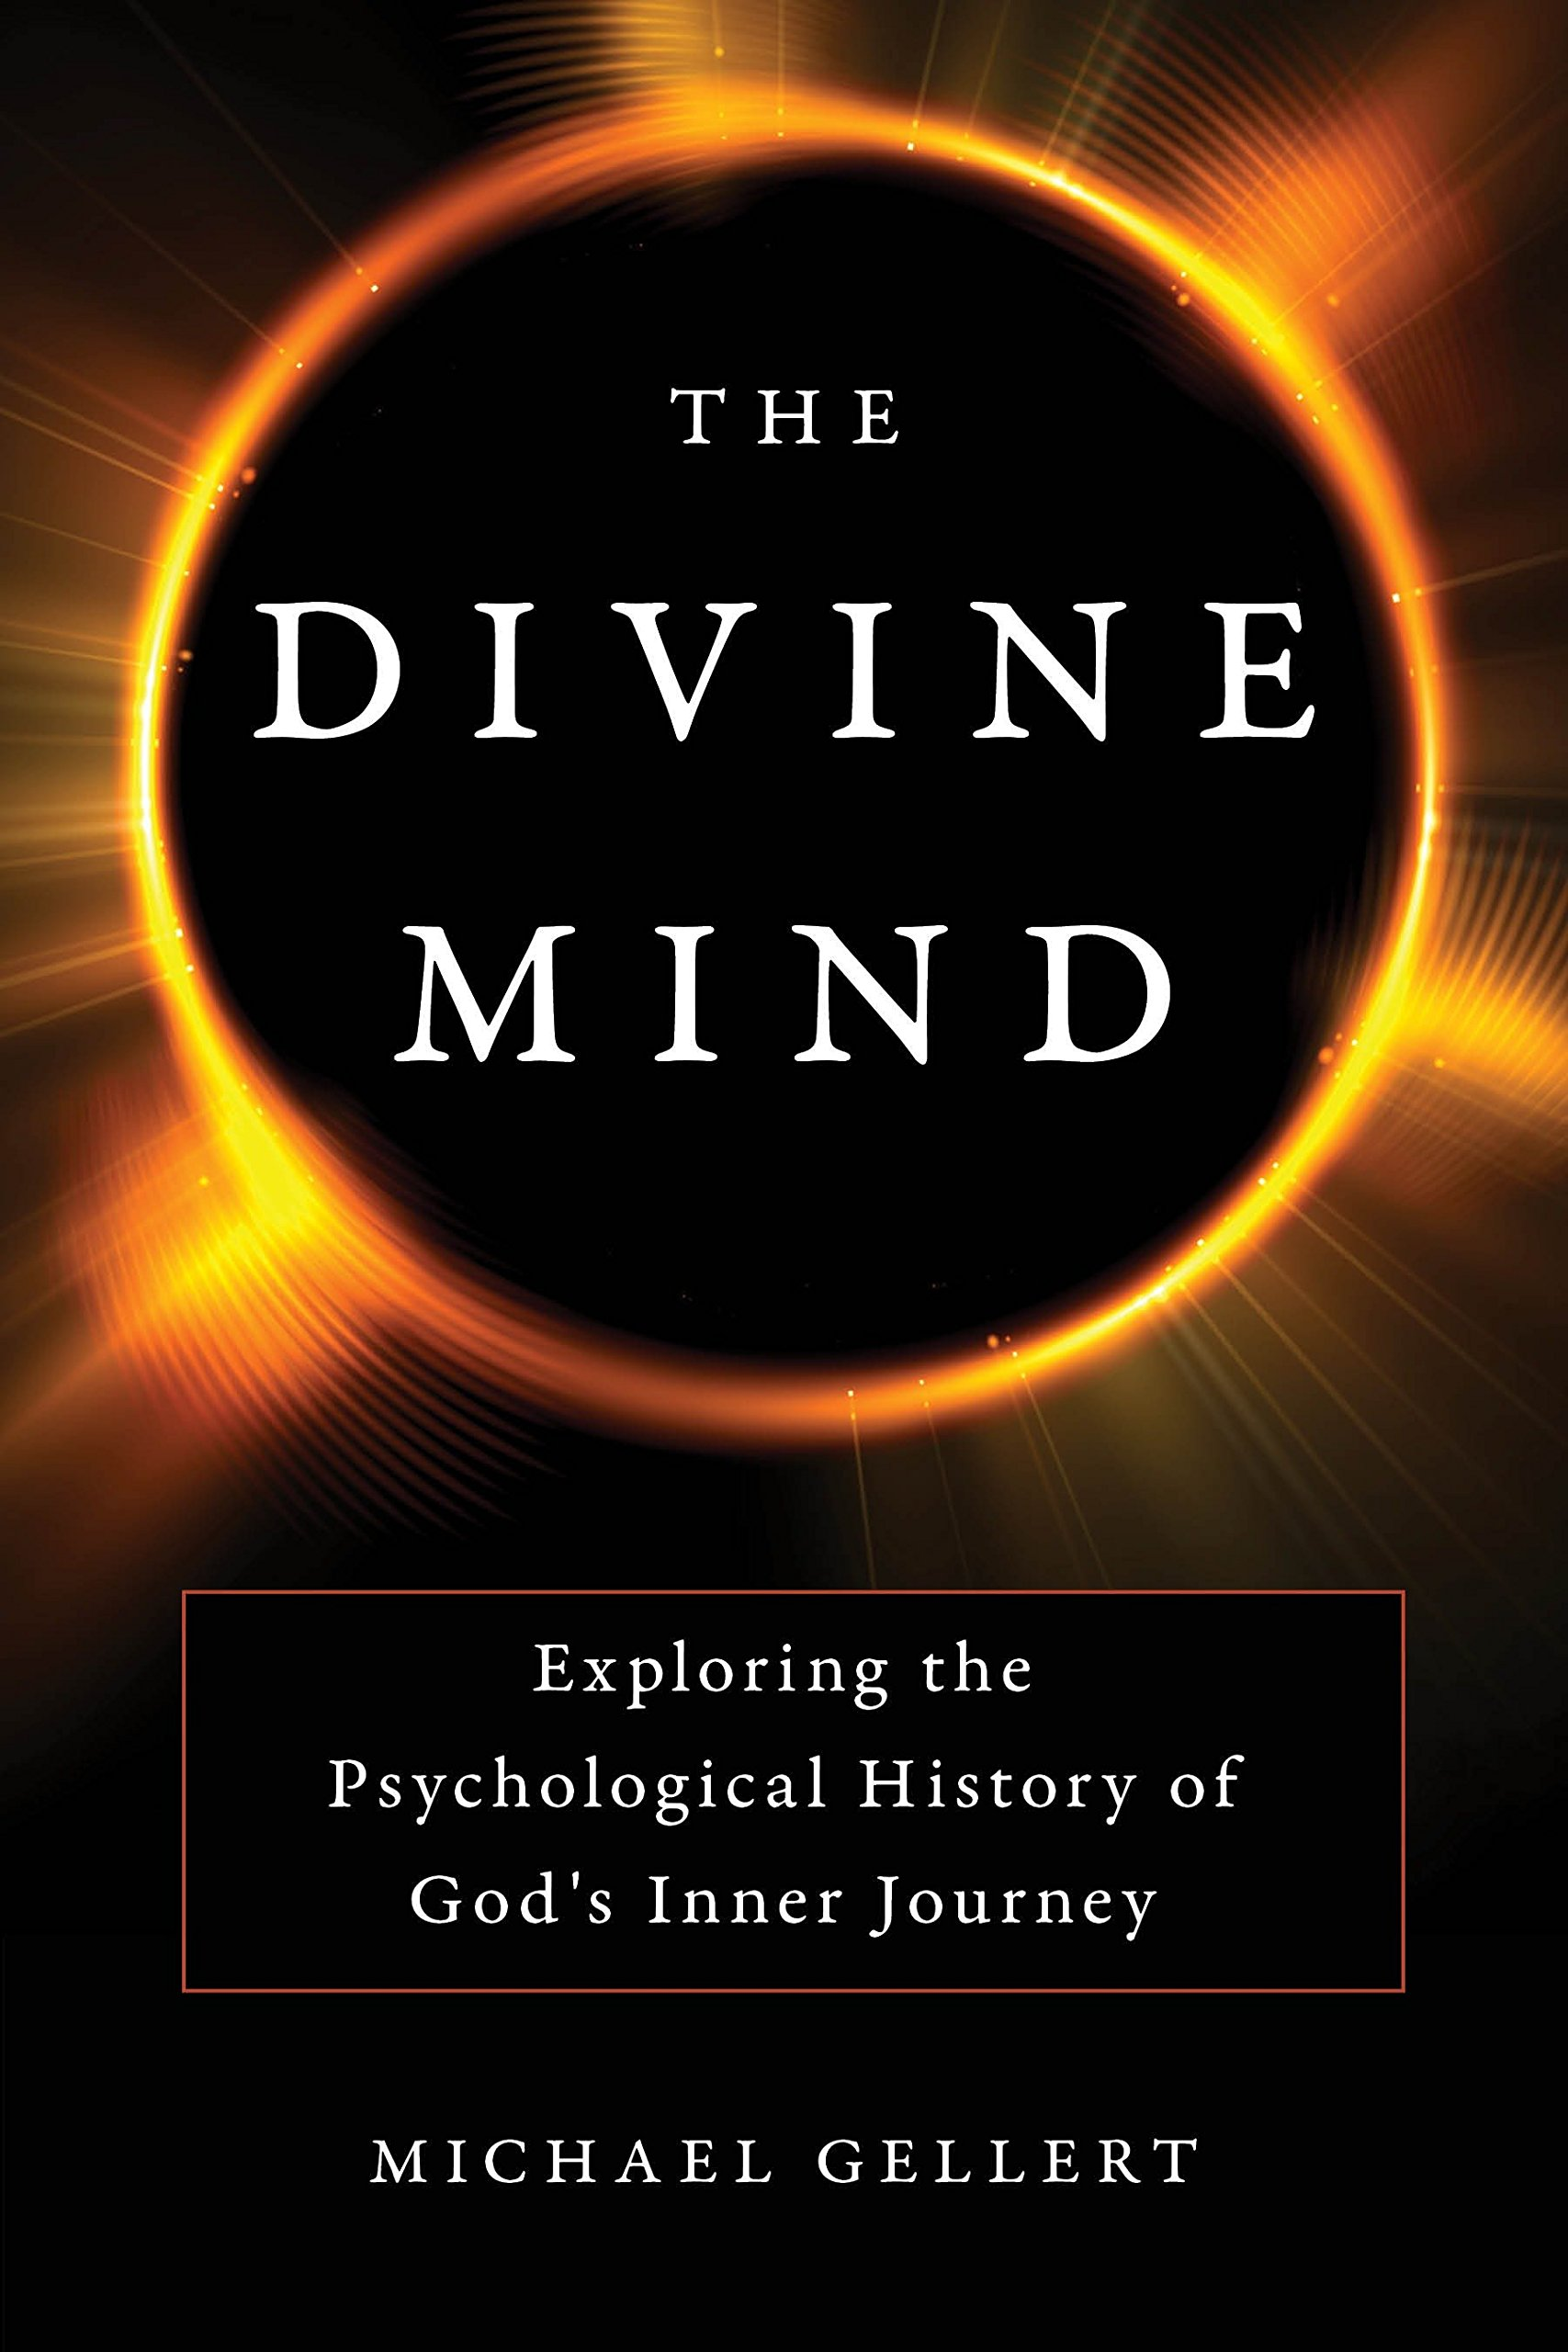 The Divine Mind: Exploring the Psychological History of God's Inner Journey